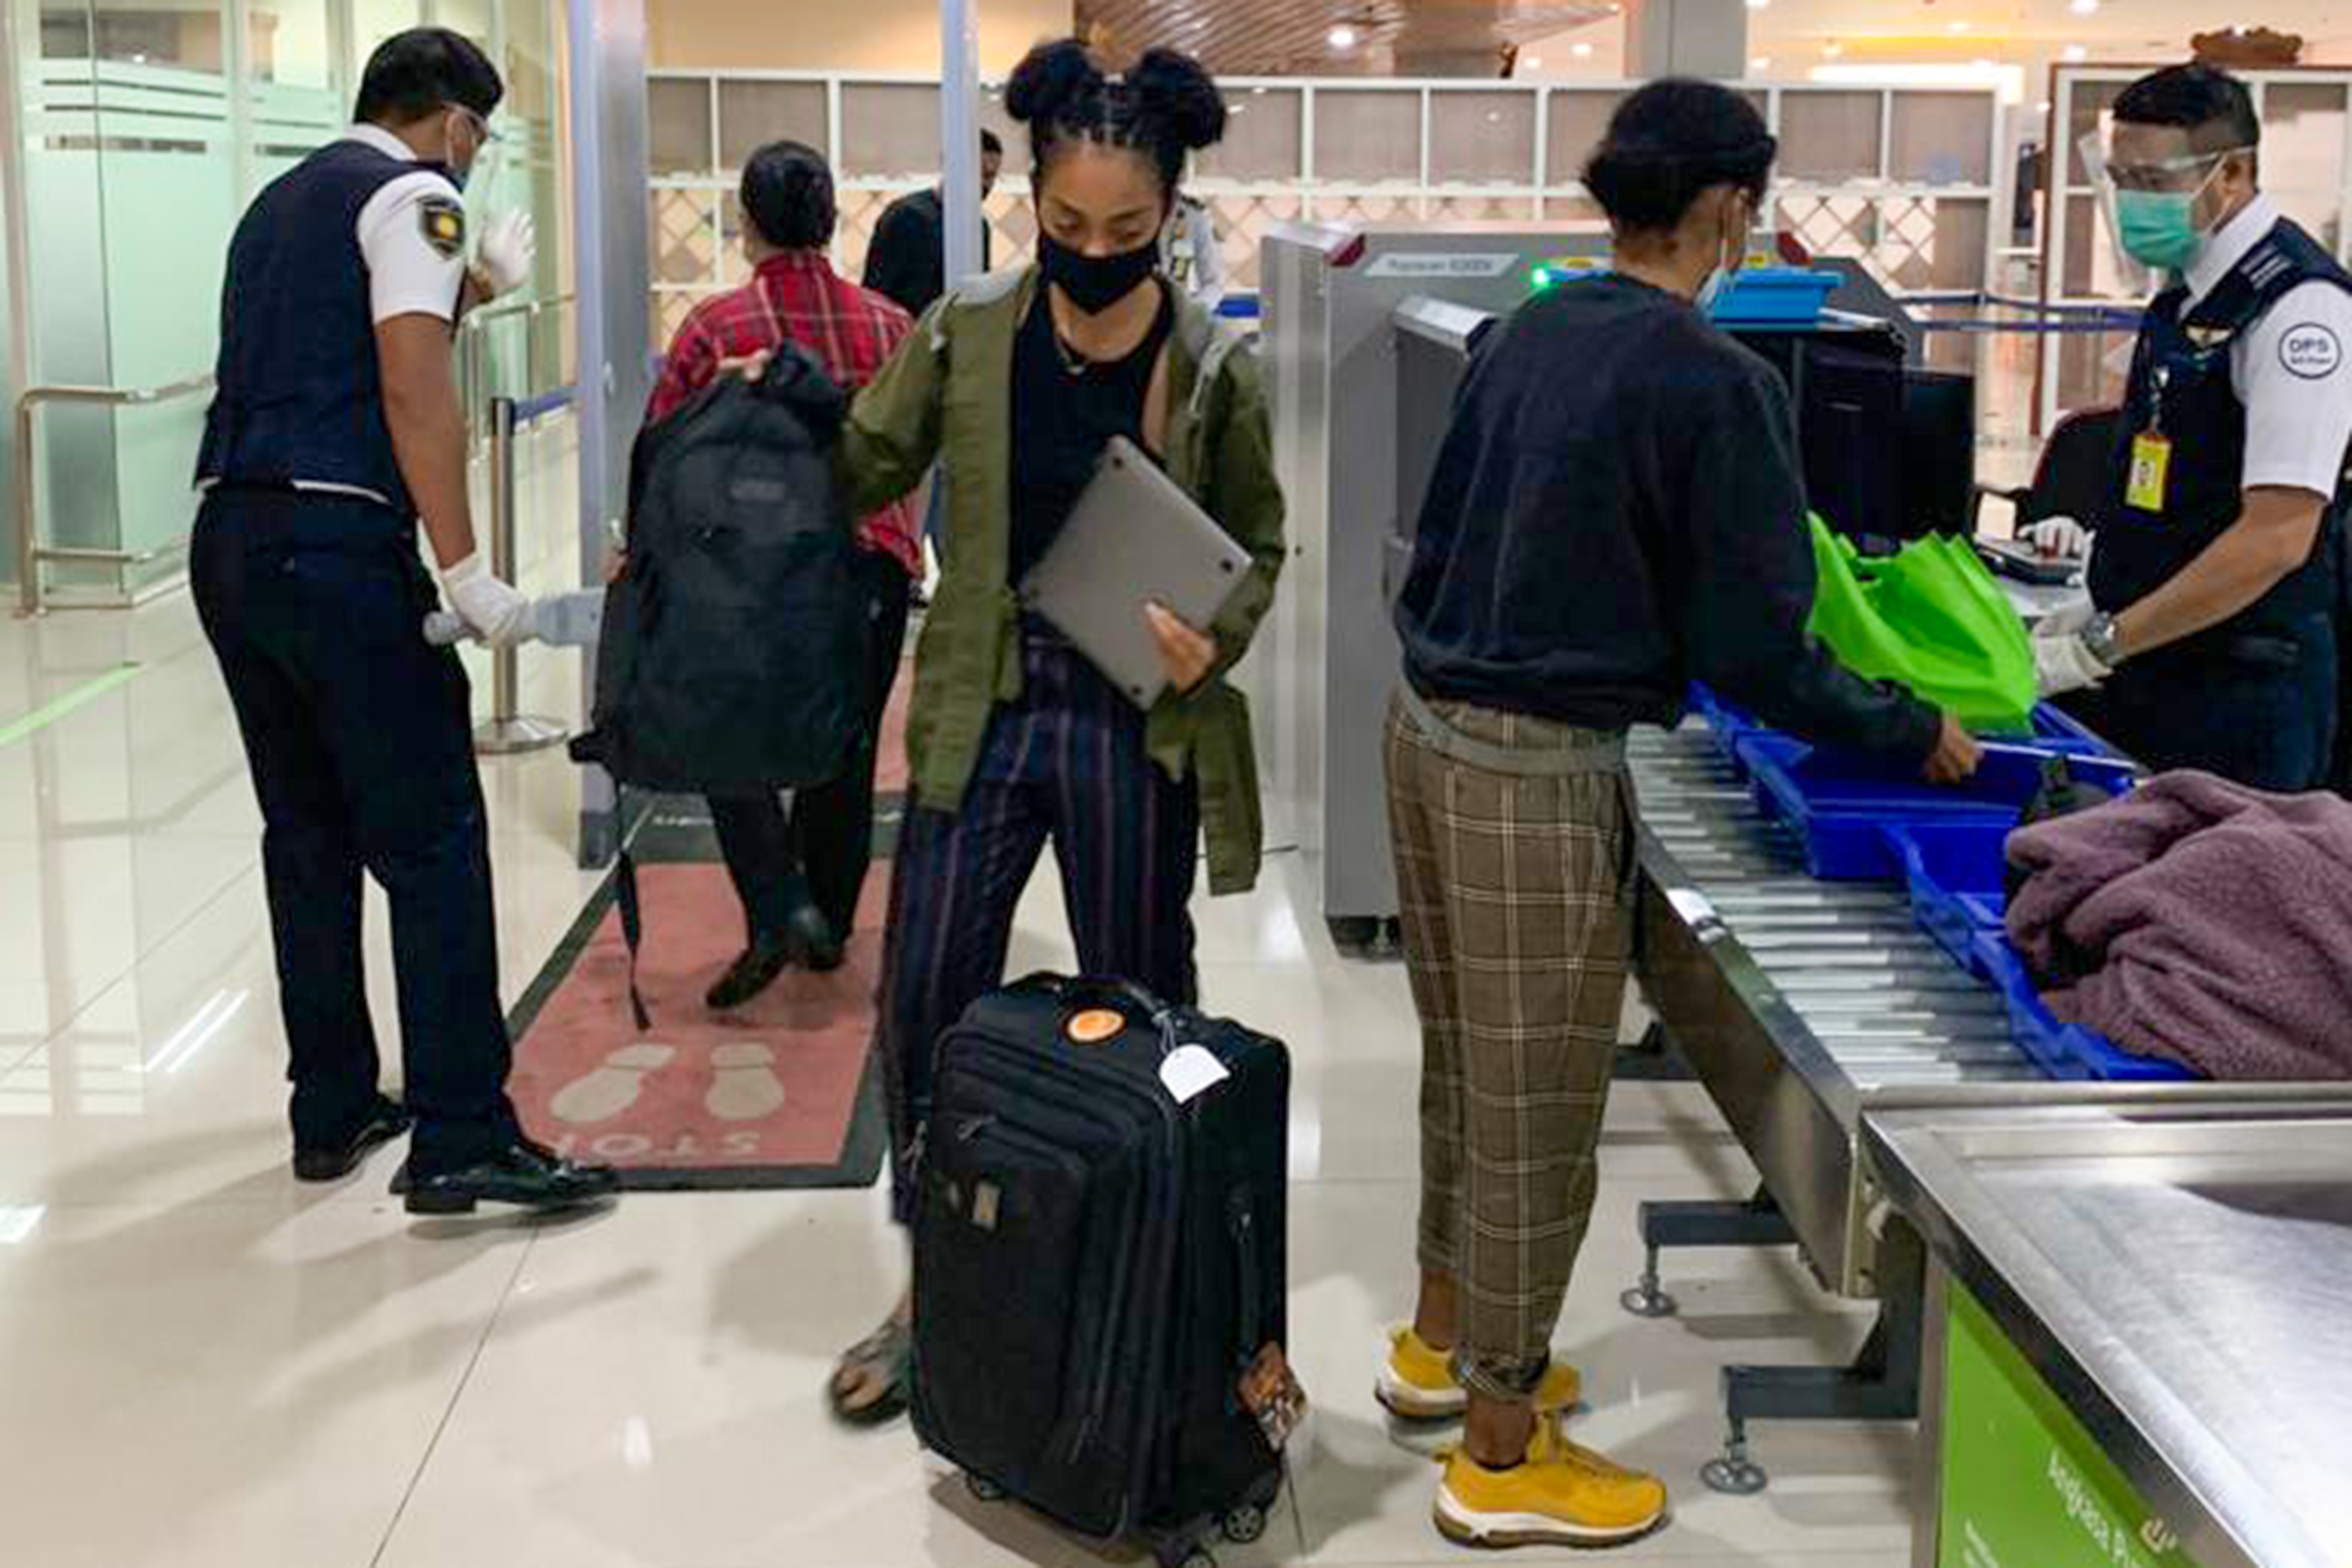 Kristen Gray prepares to leave Bali at the airport in Denpasar. (PHOTO: AFP / MINISTRY OF LAW AND HUMAN RIGHTS)